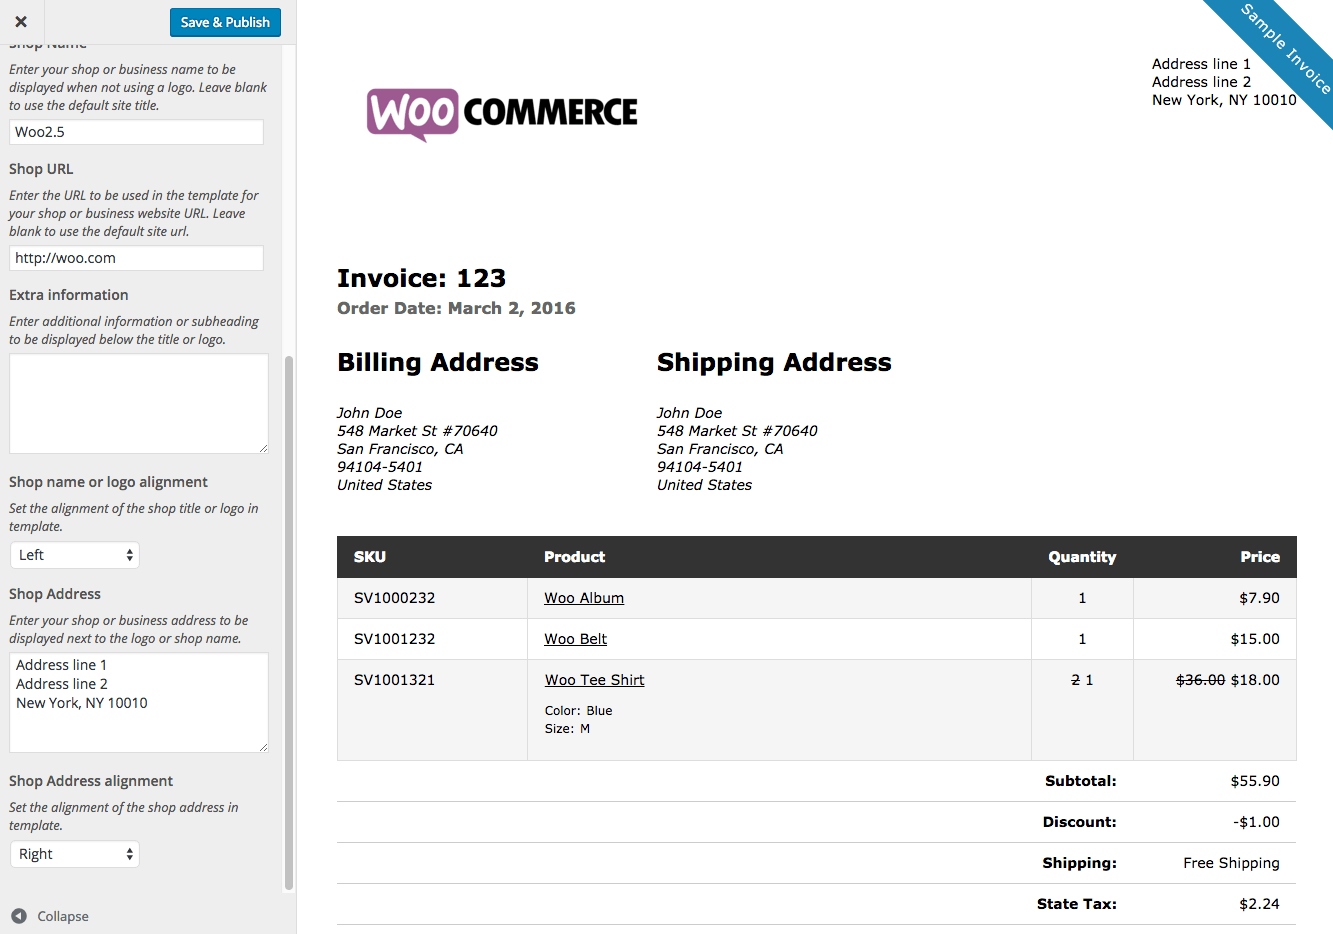 Homewouldcom  Mesmerizing Print Invoices Amp Packing Lists  Woocommerce With Glamorous Woocommerce Print Invoices  Packing Lists Customizer With Astounding Neat Receipts Drivers Also Example Rent Receipt In Addition Lic Premium Receipt Print Online And Cash Receipt Letter Sample As Well As Tneb Receipt Additionally Lemon Receipt Scanner From Woocommercecom With Homewouldcom  Glamorous Print Invoices Amp Packing Lists  Woocommerce With Astounding Woocommerce Print Invoices  Packing Lists Customizer And Mesmerizing Neat Receipts Drivers Also Example Rent Receipt In Addition Lic Premium Receipt Print Online From Woocommercecom